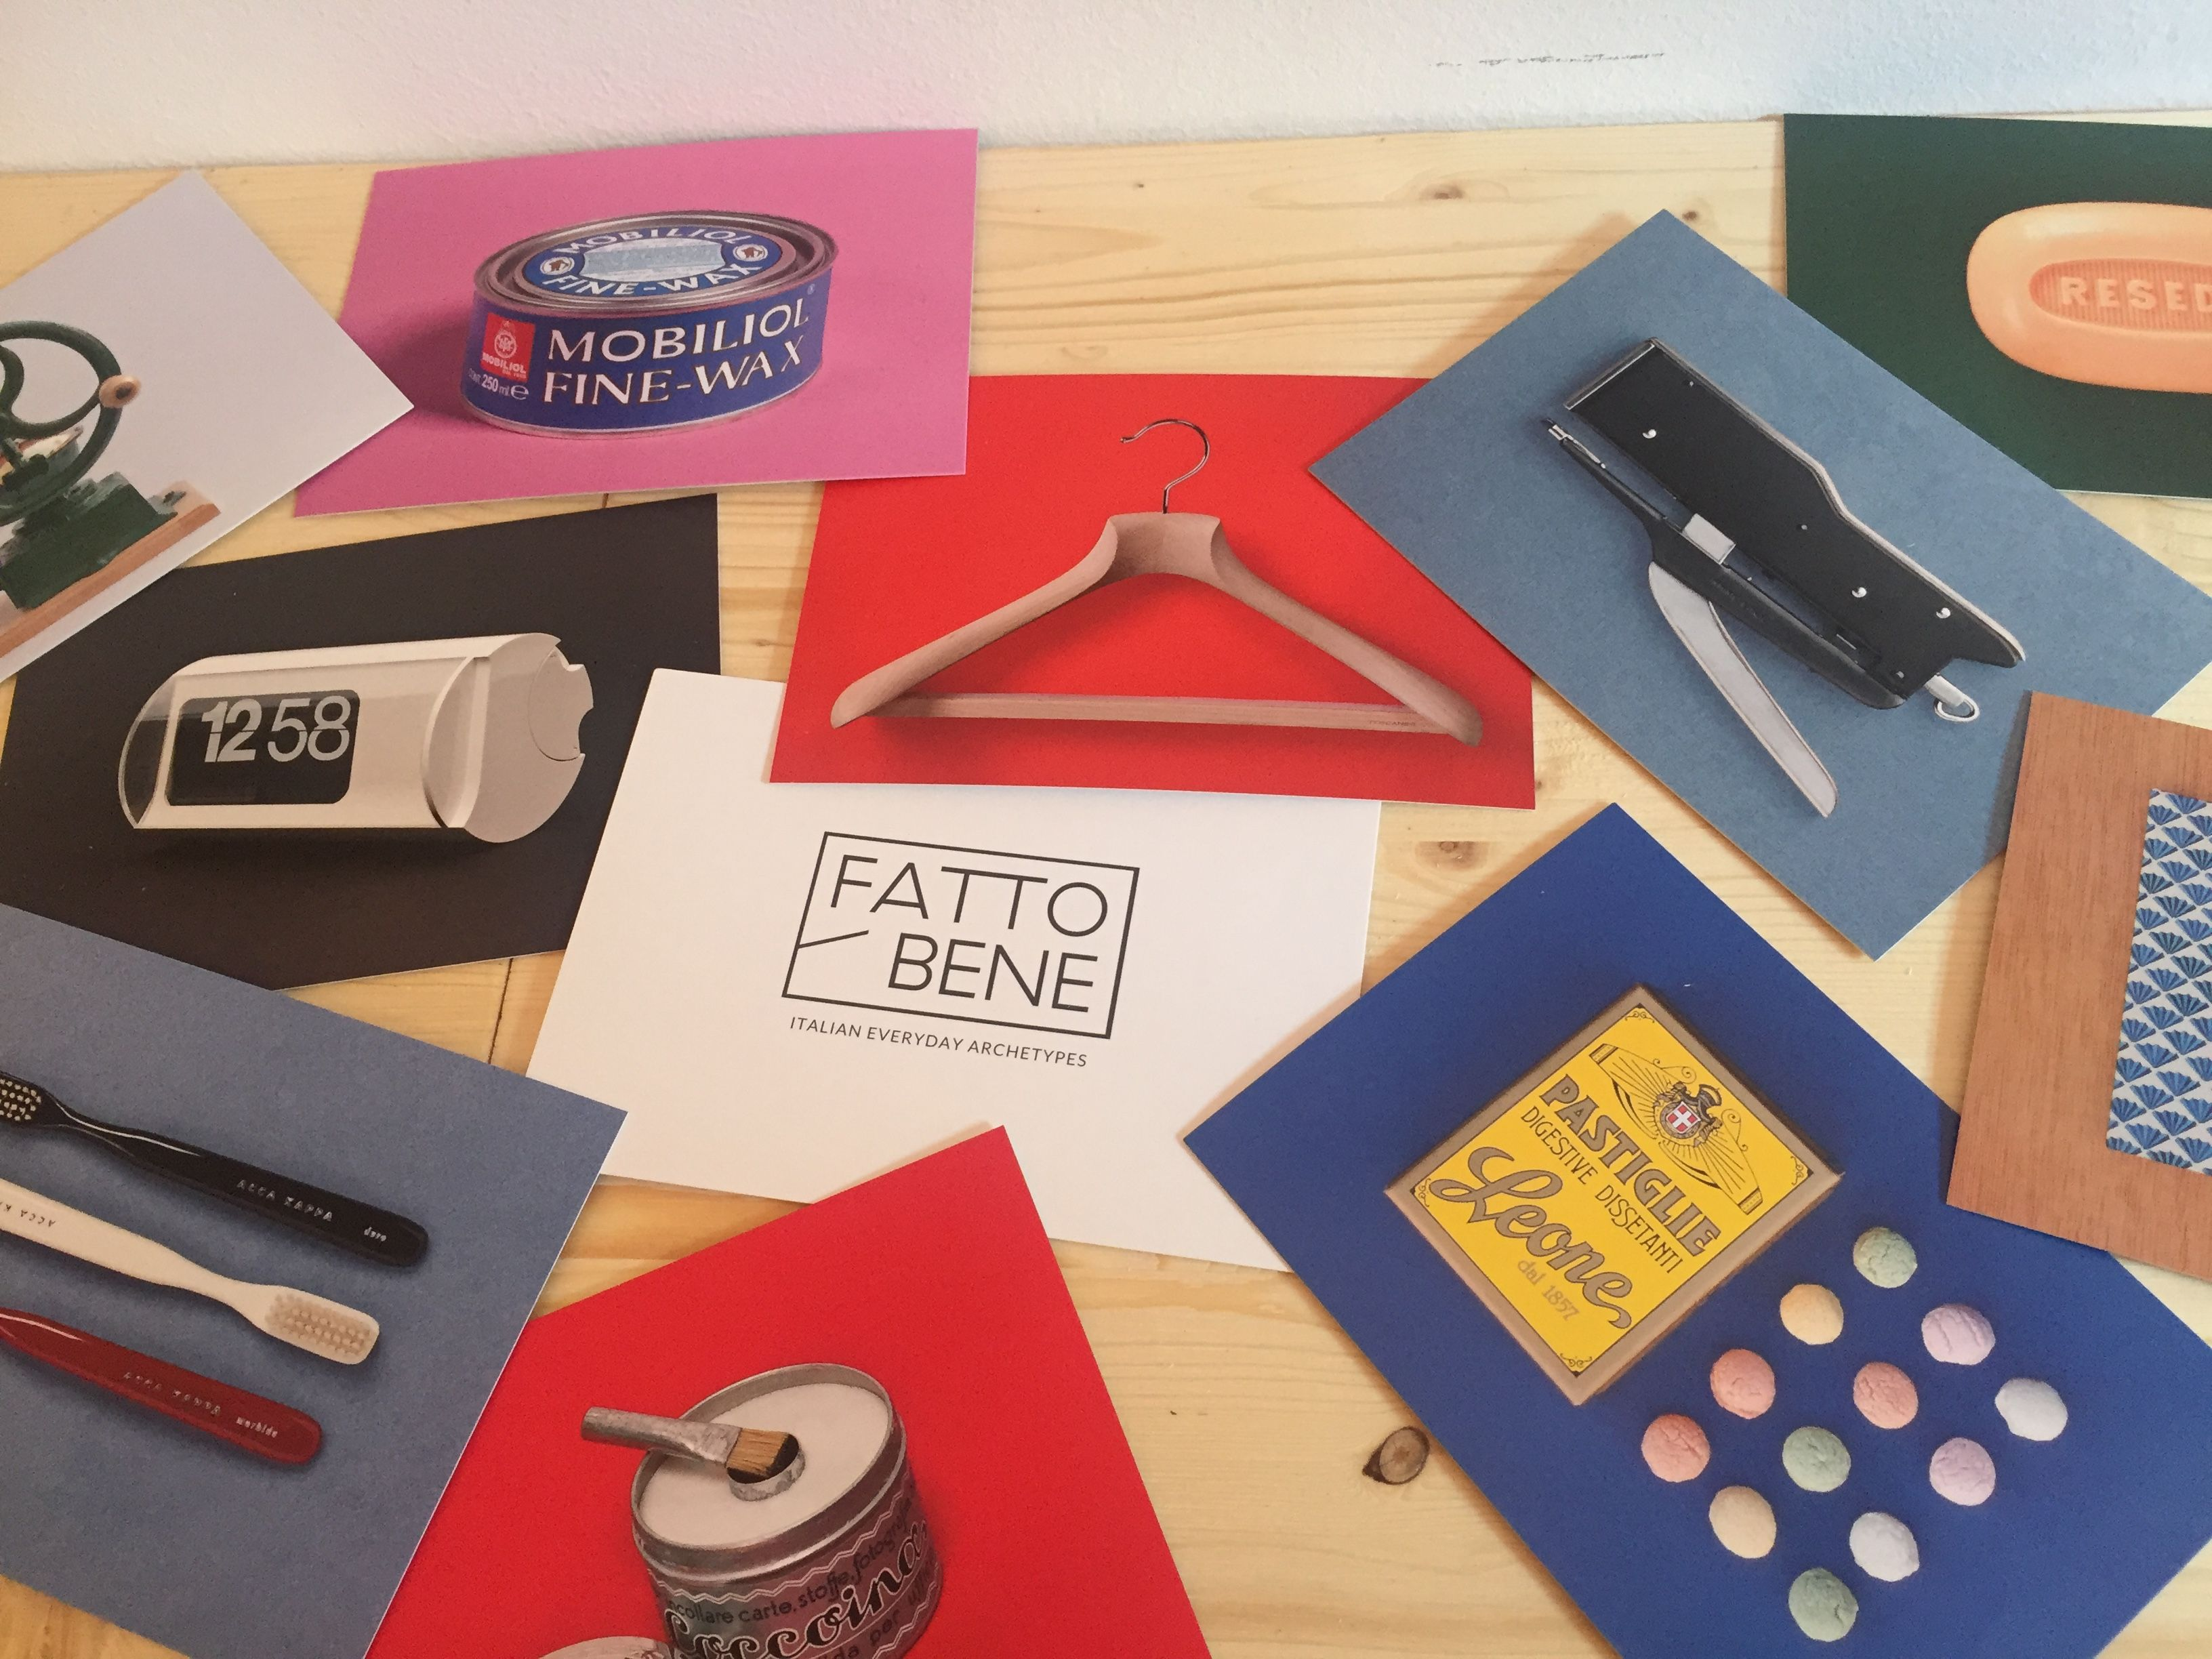 Toscanini inviteted to be part of the Fattobene temporary